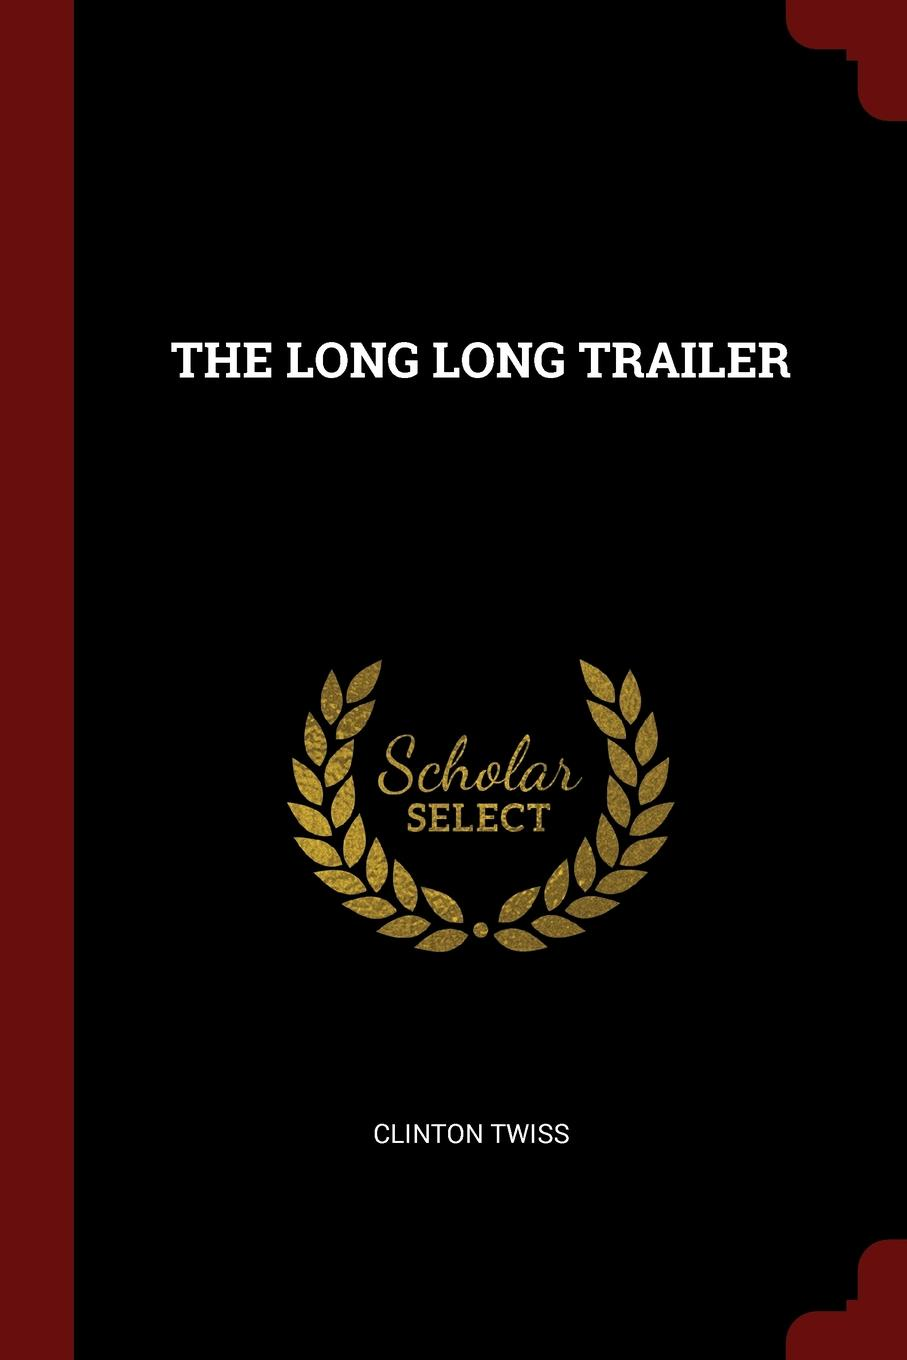 CLINTON TWISS THE LONG LONG TRAILER